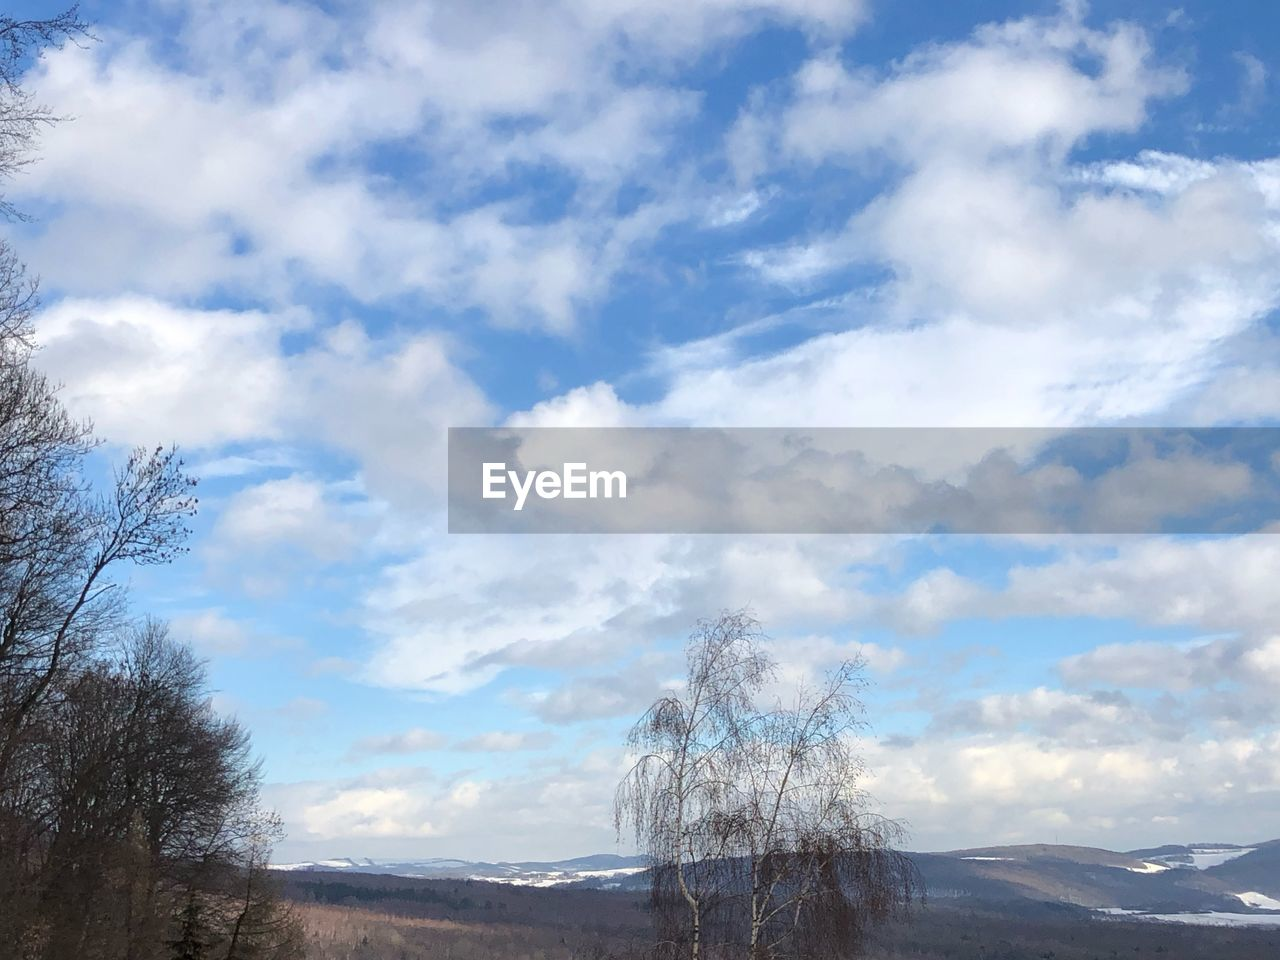 cloud - sky, sky, beauty in nature, scenics - nature, tranquility, tranquil scene, mountain, nature, non-urban scene, no people, day, environment, landscape, tree, outdoors, idyllic, plant, low angle view, cold temperature, mountain peak